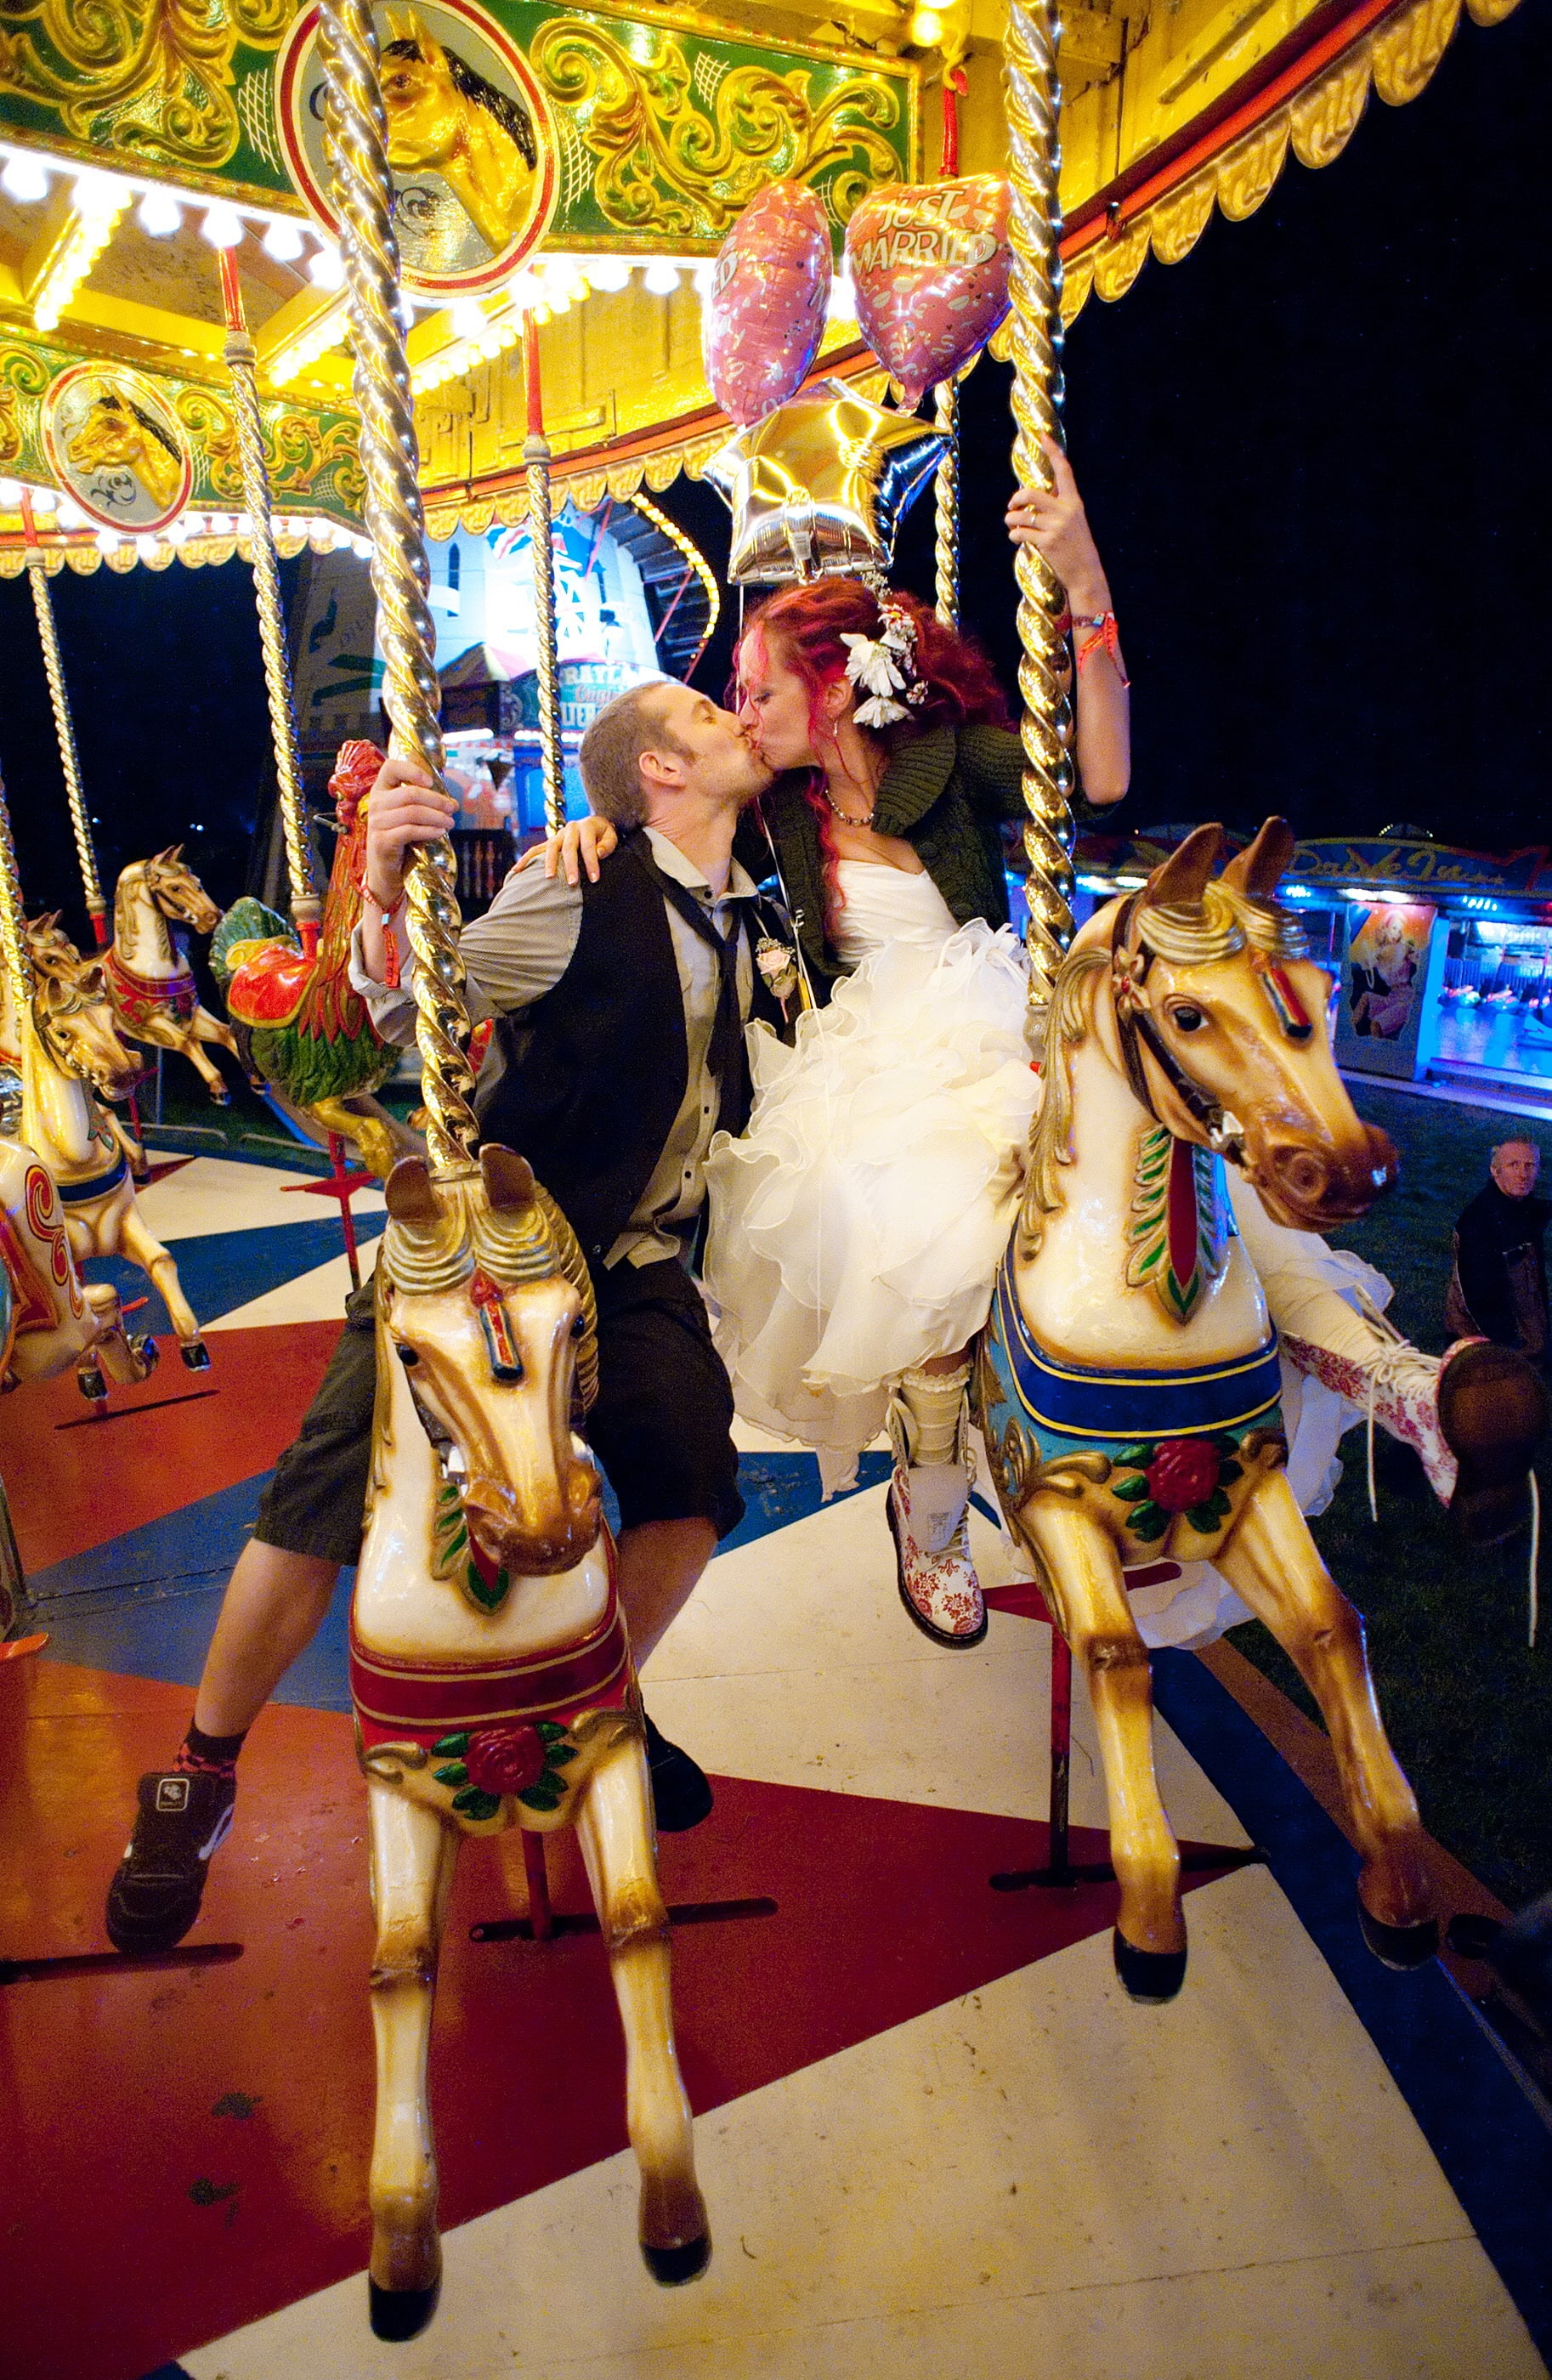 Newlyweds kissed at the Big Chill festival near Ledbury in Herefordshire.